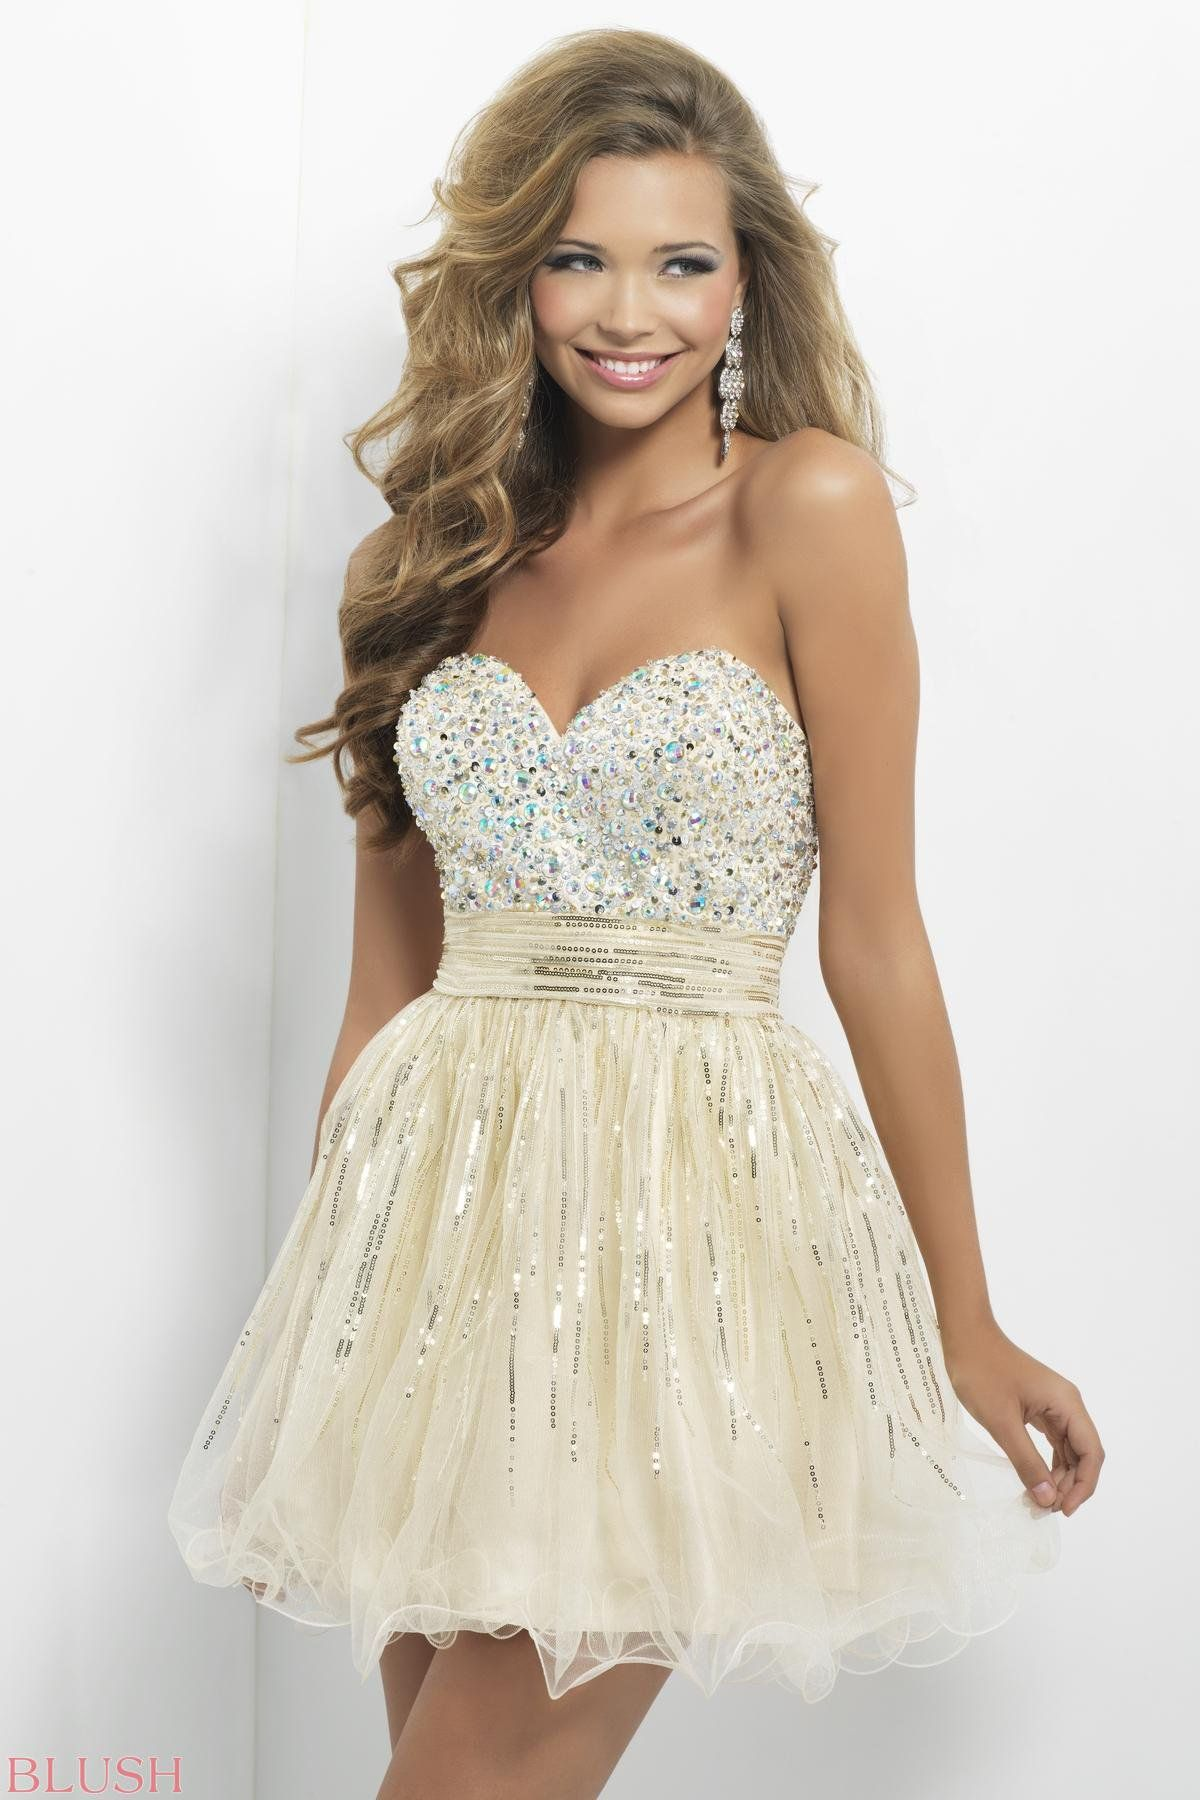 b4c294967aa Homecoming dresses by Blush Prom Homecoming Style 9665 on Wanelo ...